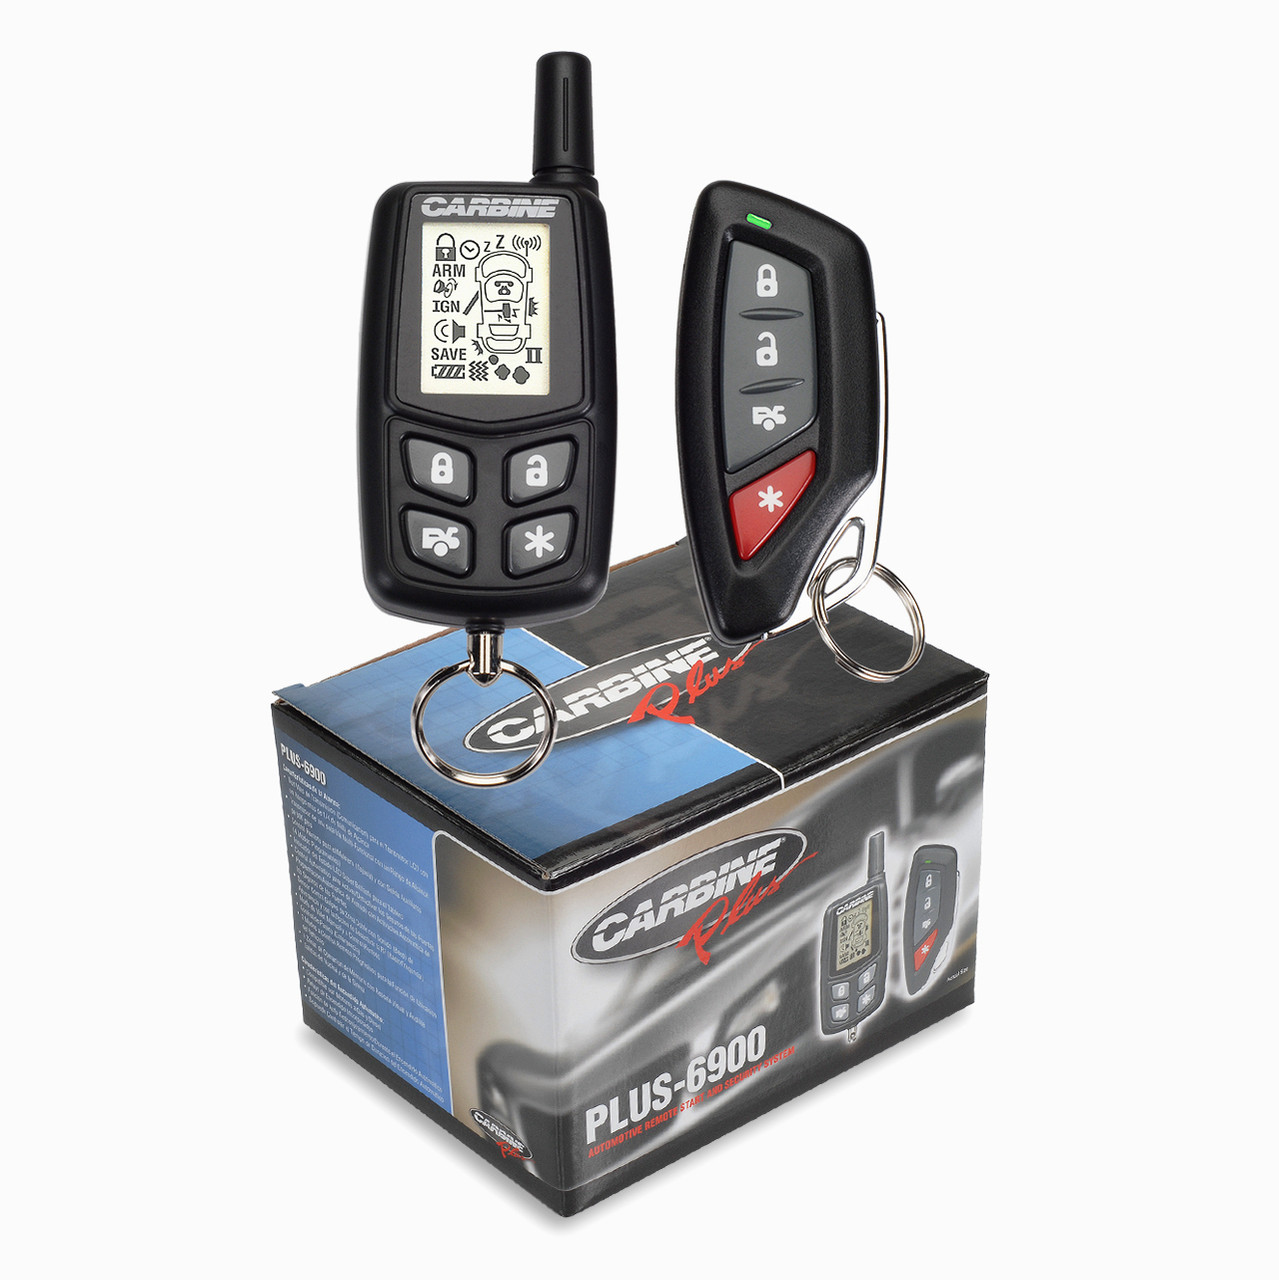 small resolution of carbine plus 6900 4 channel two way remote start security system viper car alarm wiring diagram carbine car alarm wiring diagram